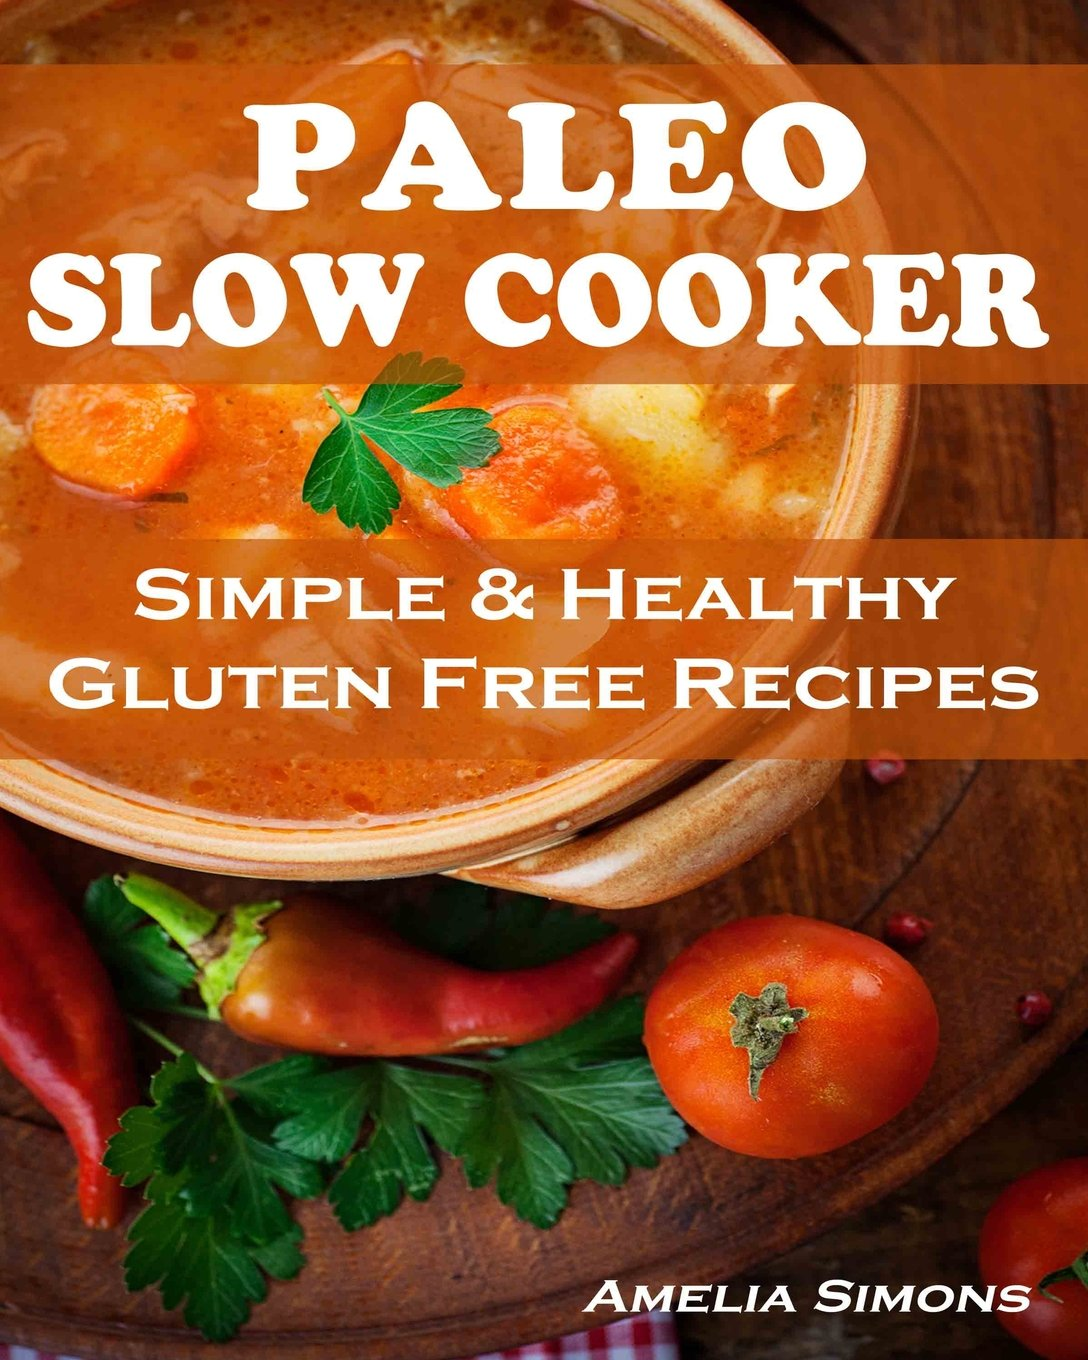 Paleo Slow Cooker (Large Print Edition): Simple and Healthy Gluten Free Recipes pdf epub